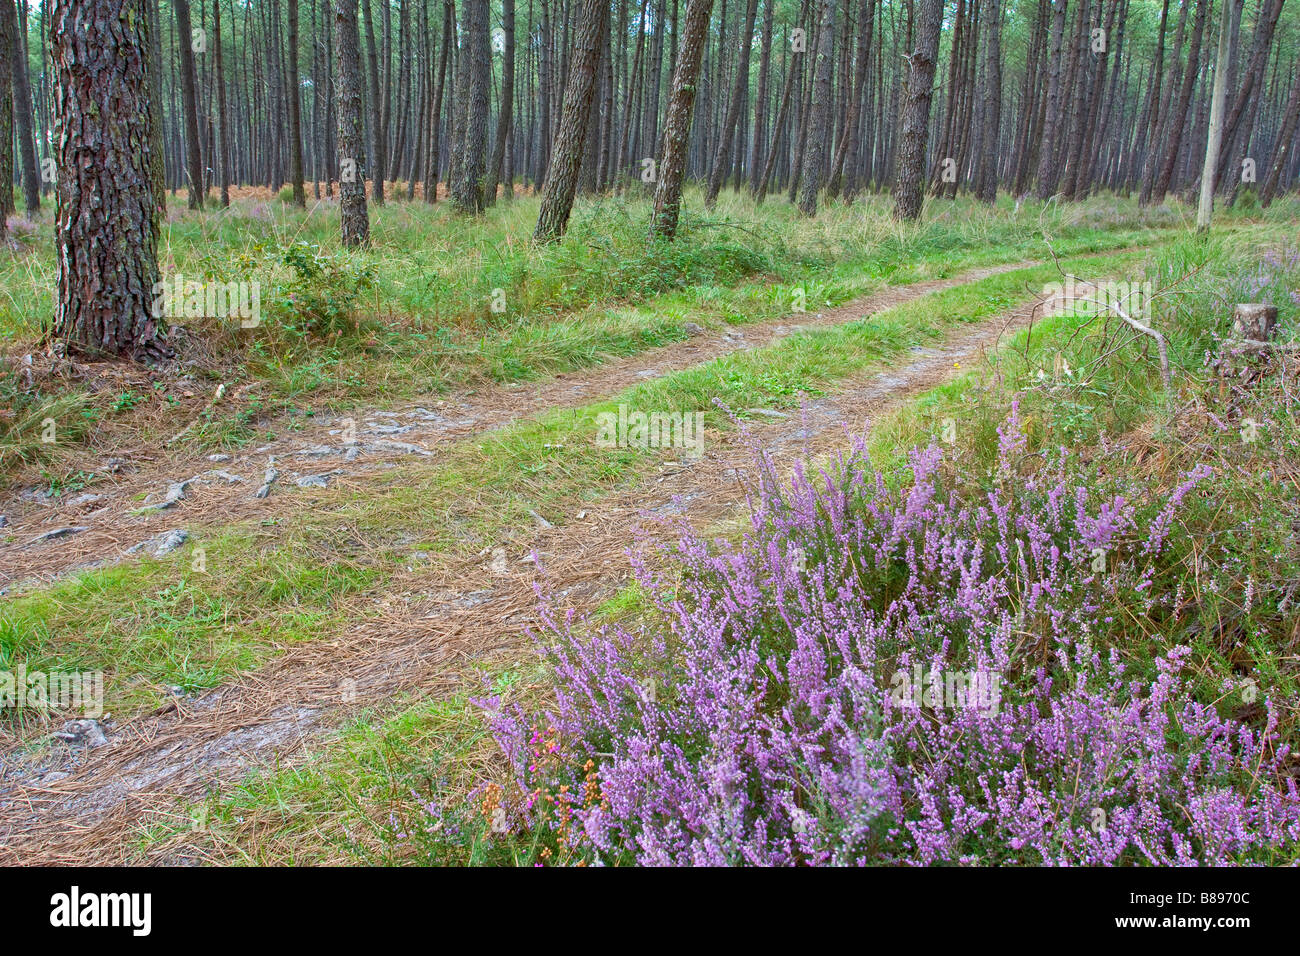 Pink heather flowers in a pine tree forest stock photo 22330684 alamy pink heather flowers in a pine tree forest mightylinksfo